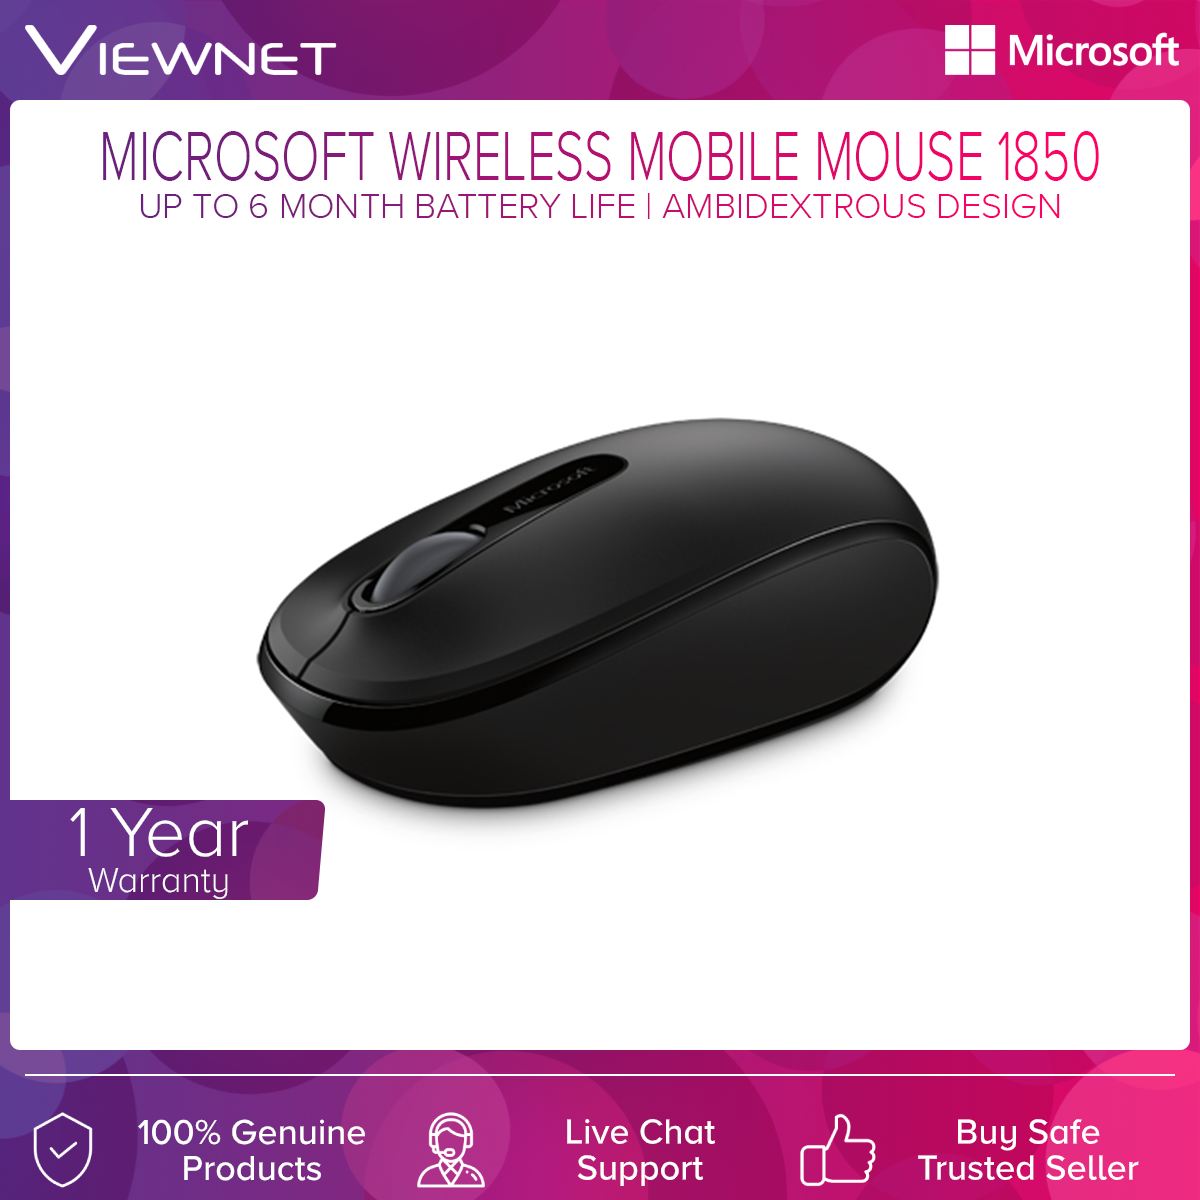 Microsoft Wireless Mobile Mouse 1850 with Plug and Play, Nano Receiver, Ambidextrous Design, Comfort and Portability, Up To 6 Month Battery Life